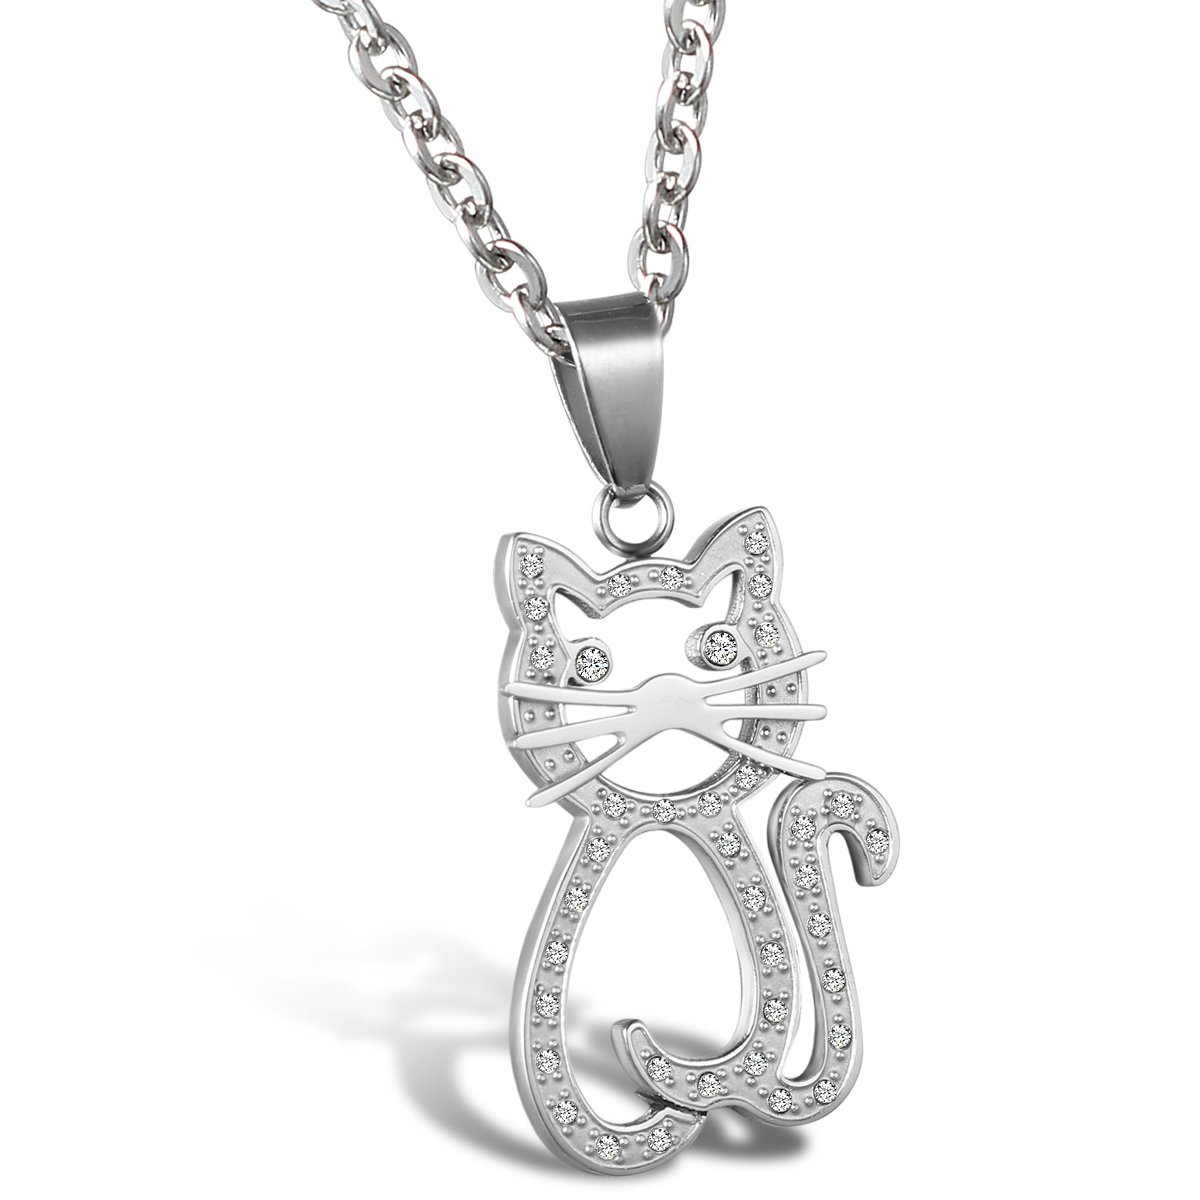 JewelryWe Lovely Girls Cute Cat Kitty Charm Pendant Necklace Stainless Steel 22 Inch Chain Christmas Decoration Ornament Gift JW32PCA1005